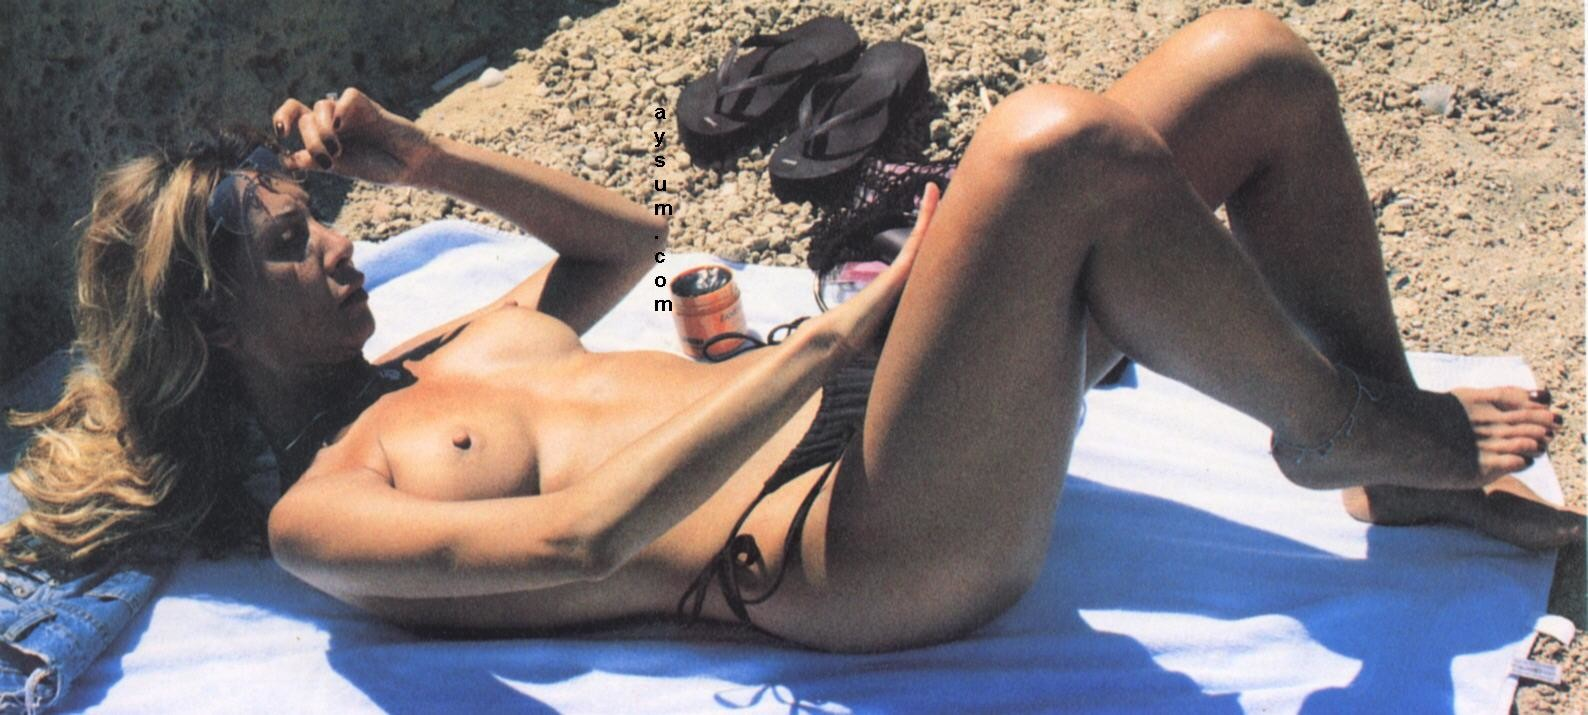 Dimitra liani nude pics mobile optimised photo for android iphone